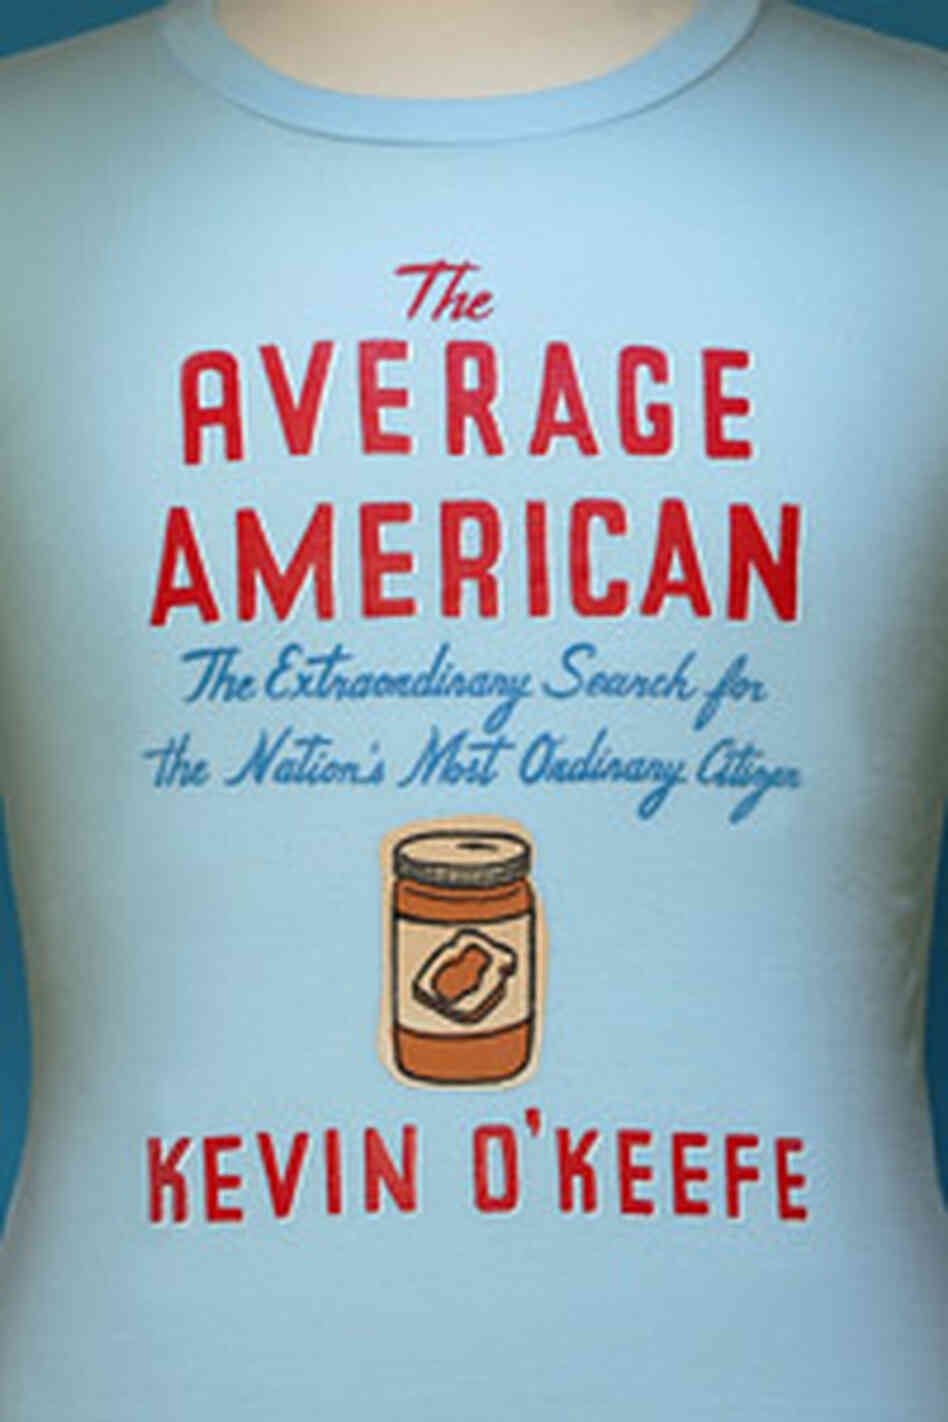 From 'The Average American'